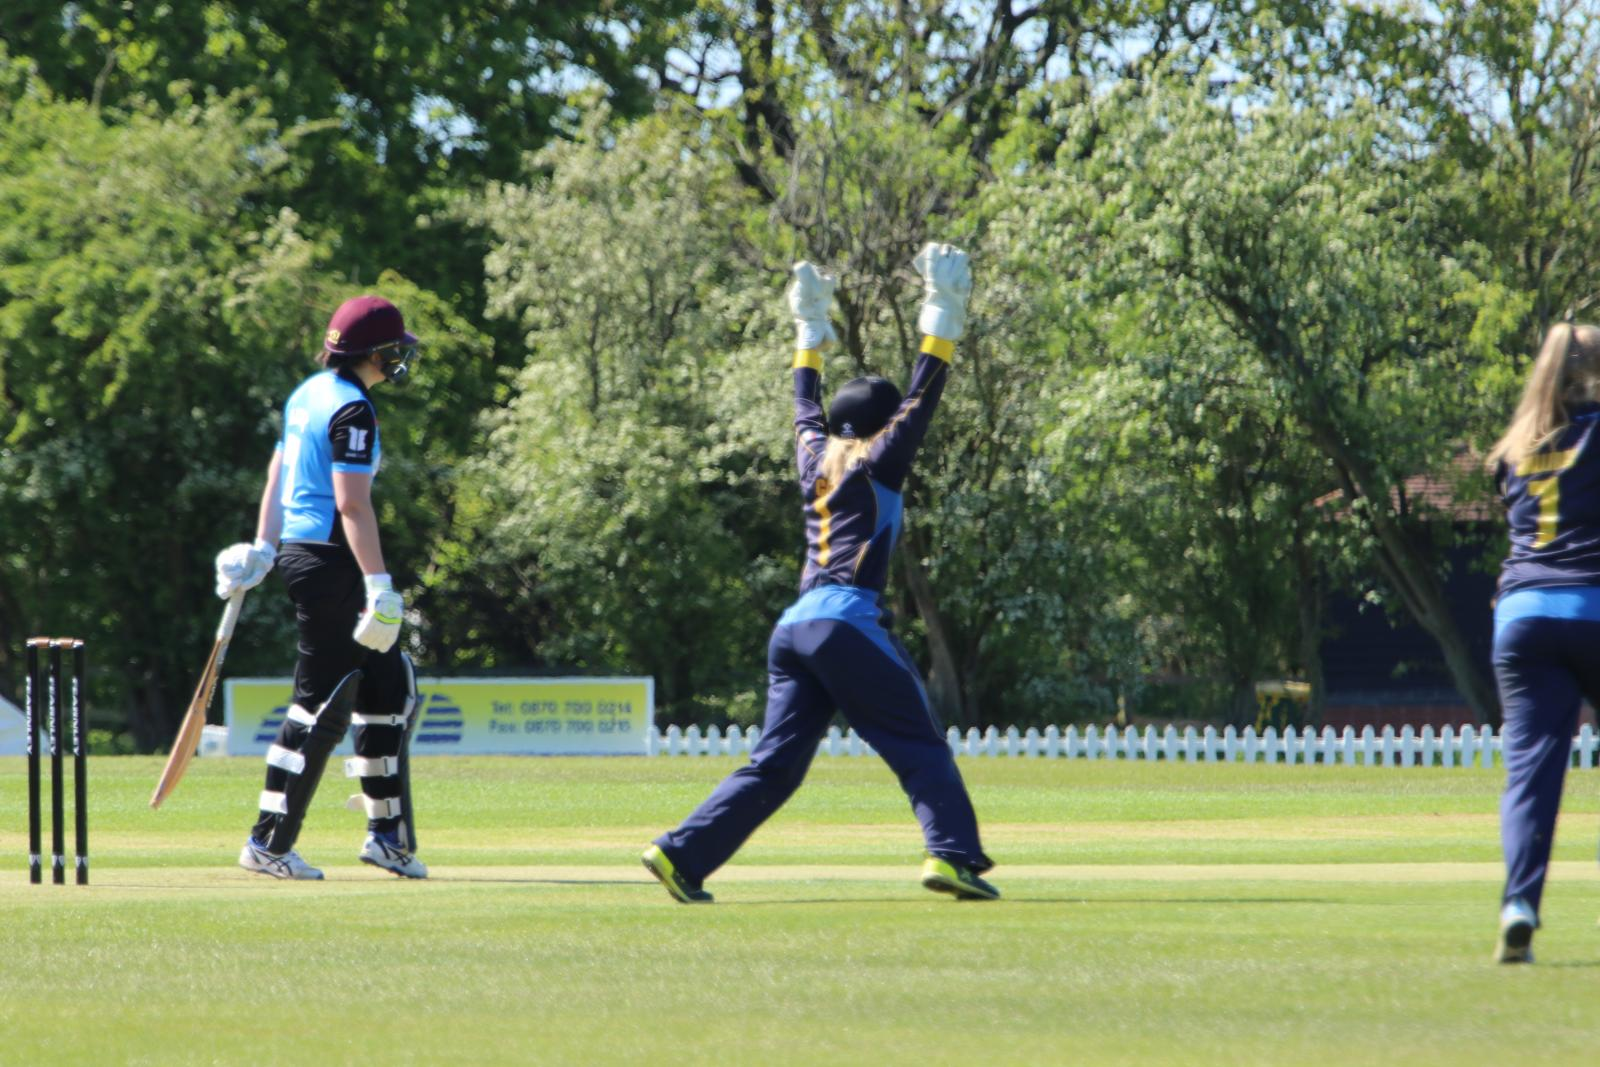 DWCC vs Worcestershire 2019